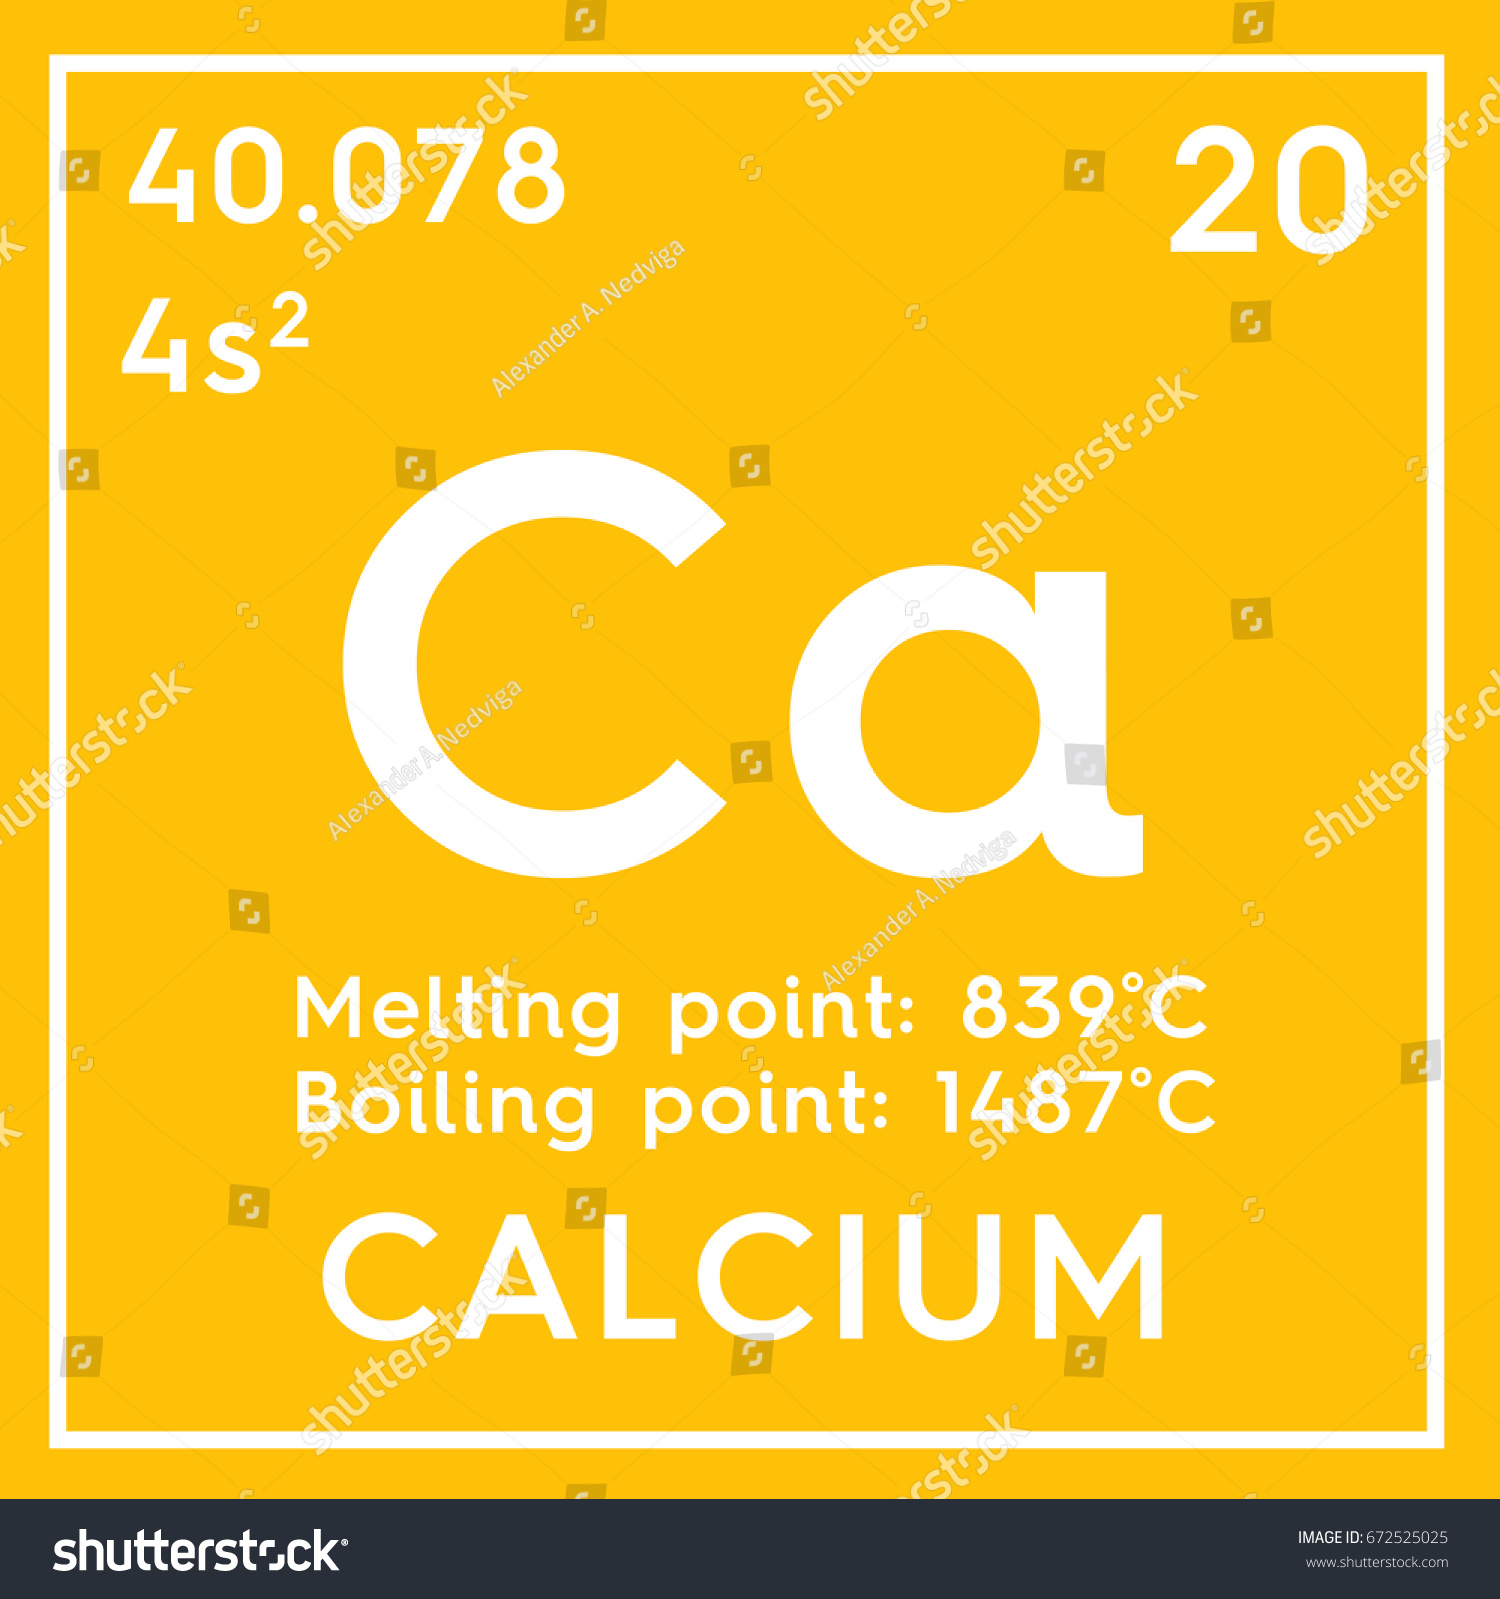 Periodic table calcium image collections periodic table images periodic table calcium gallery periodic table images periodic table calcium choice image periodic table images periodic gamestrikefo Choice Image